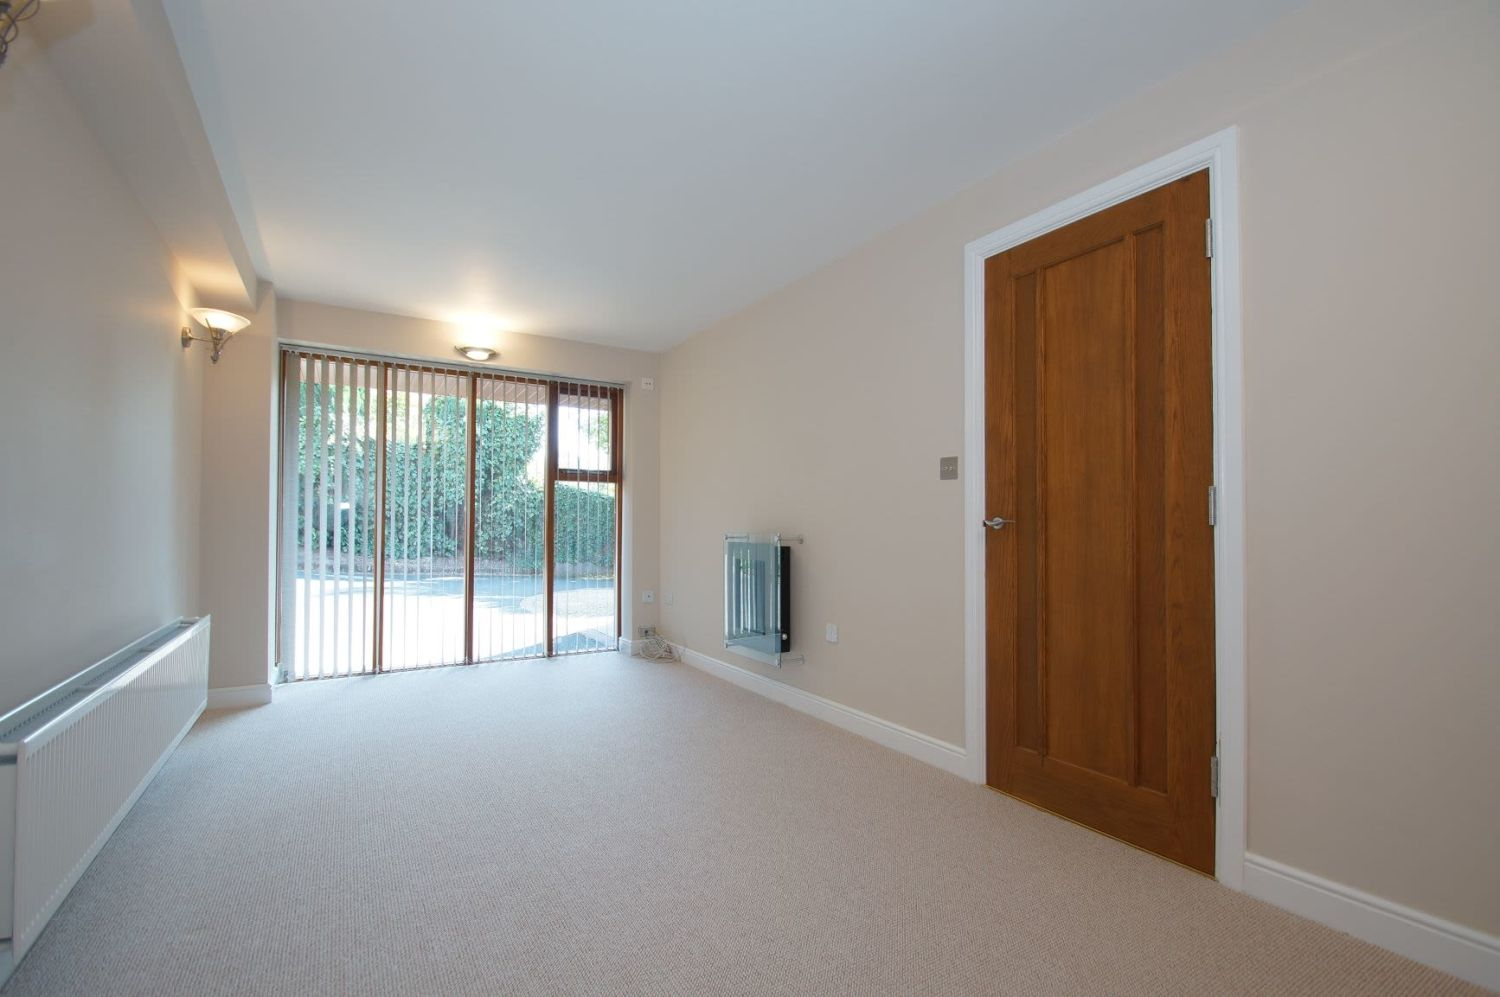 4 bed detached for sale in Acre Lane, Webheath  - Property Image 6